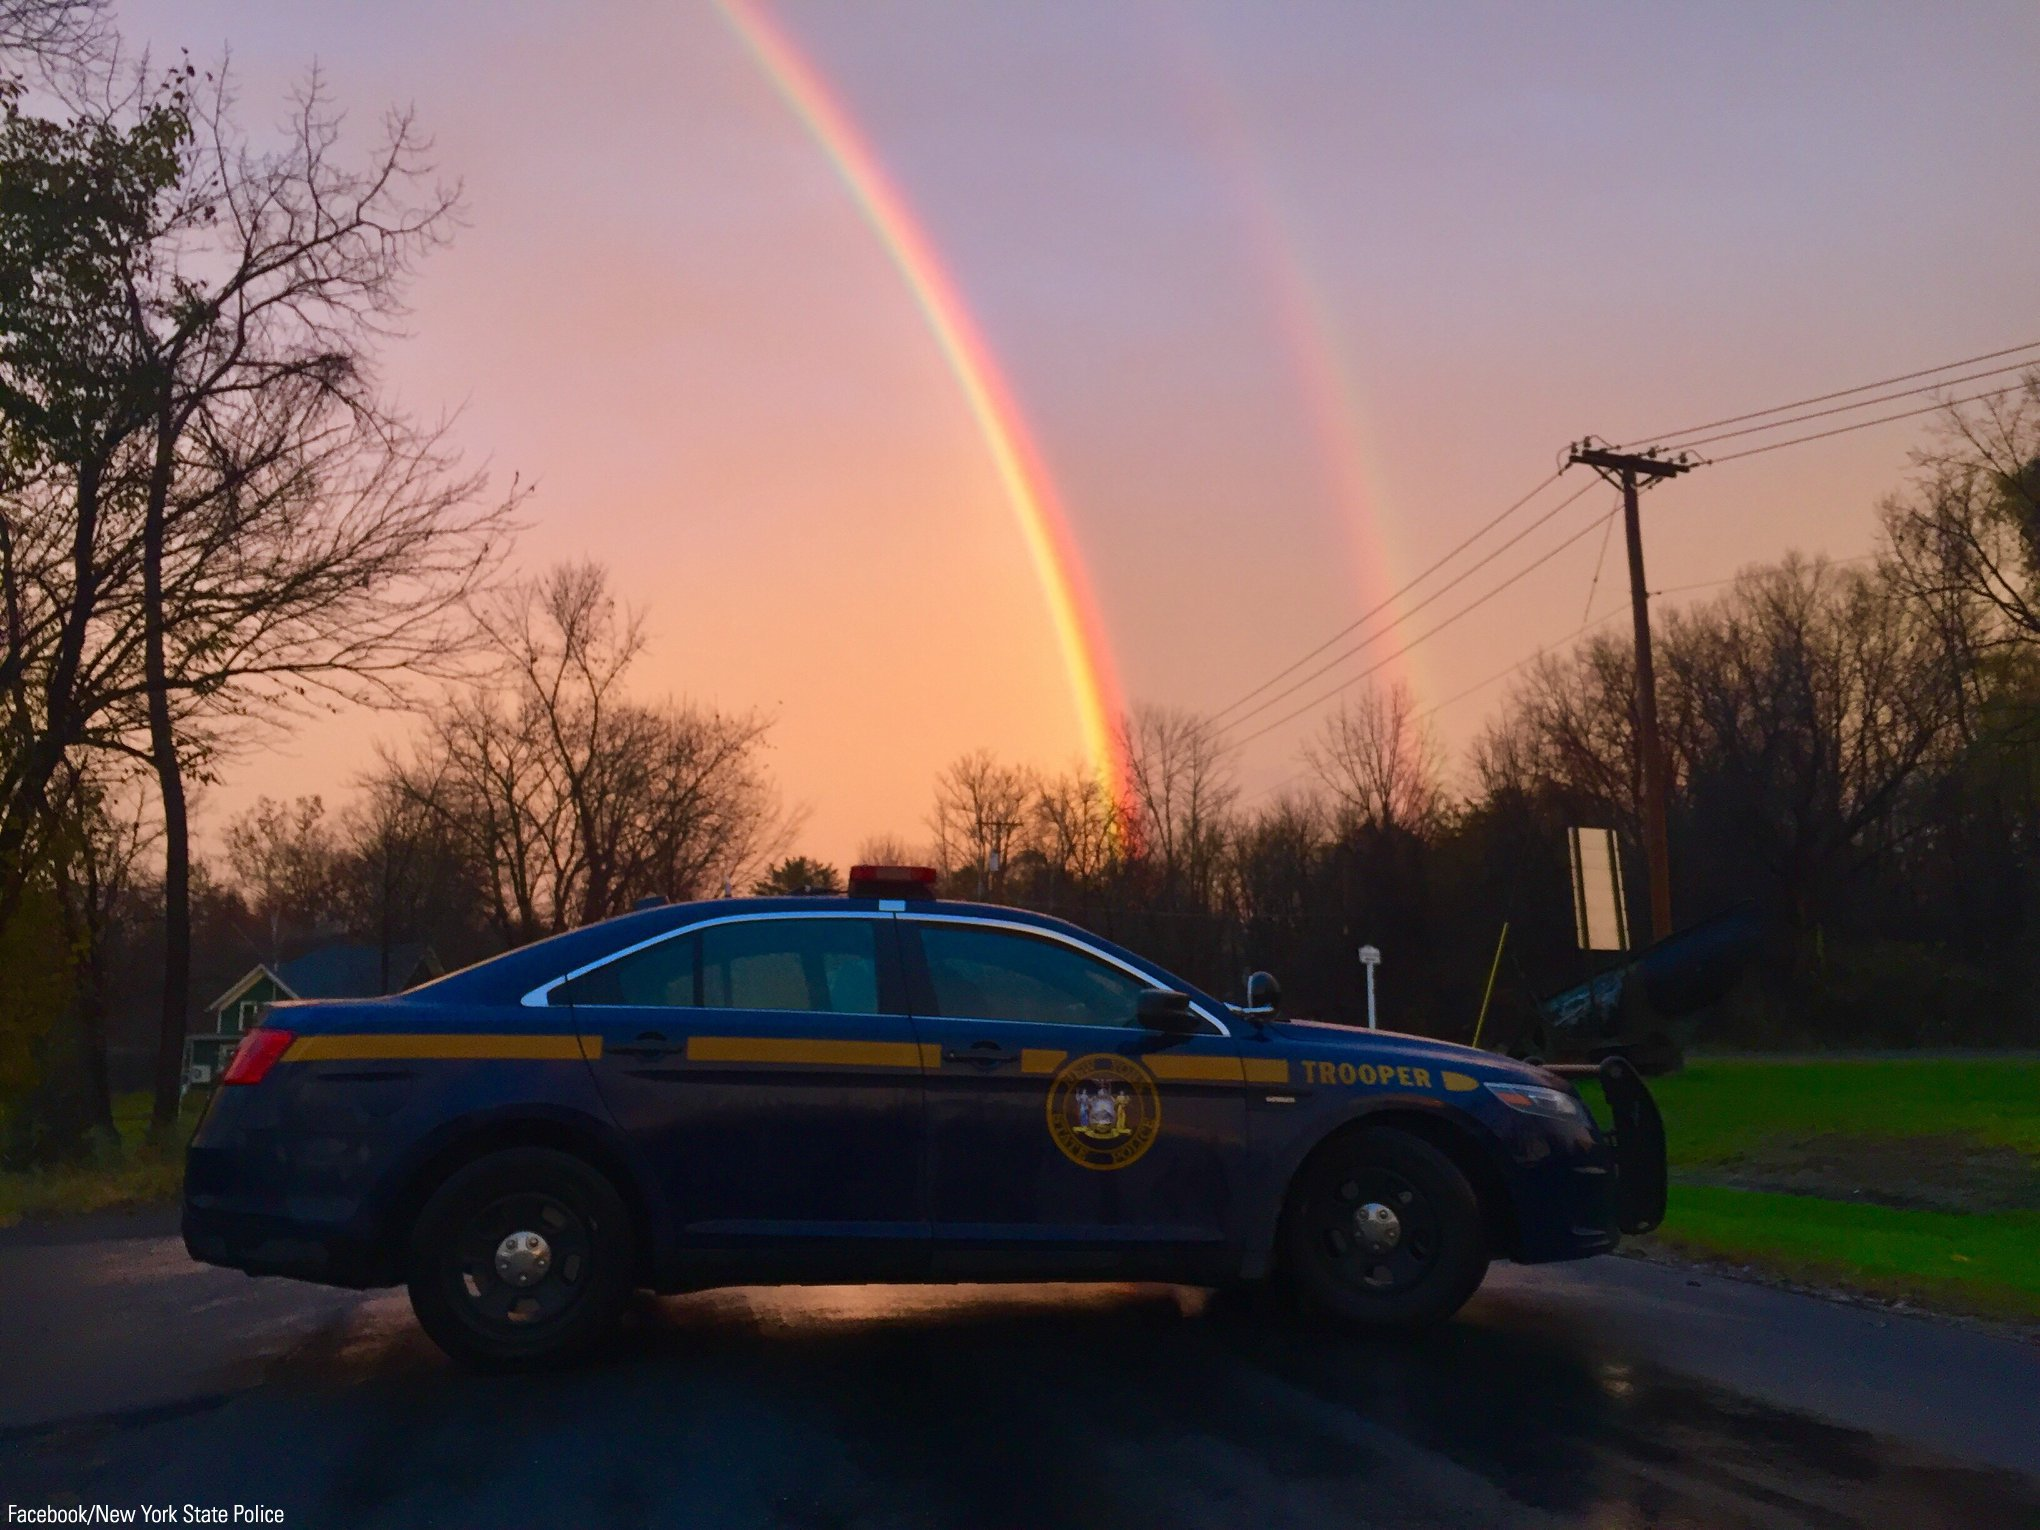 A trooper took this beautiful photo of a double rainbow over a New York State Police squad car, Tuesday. https://t.co/j9V1h3Ja5p